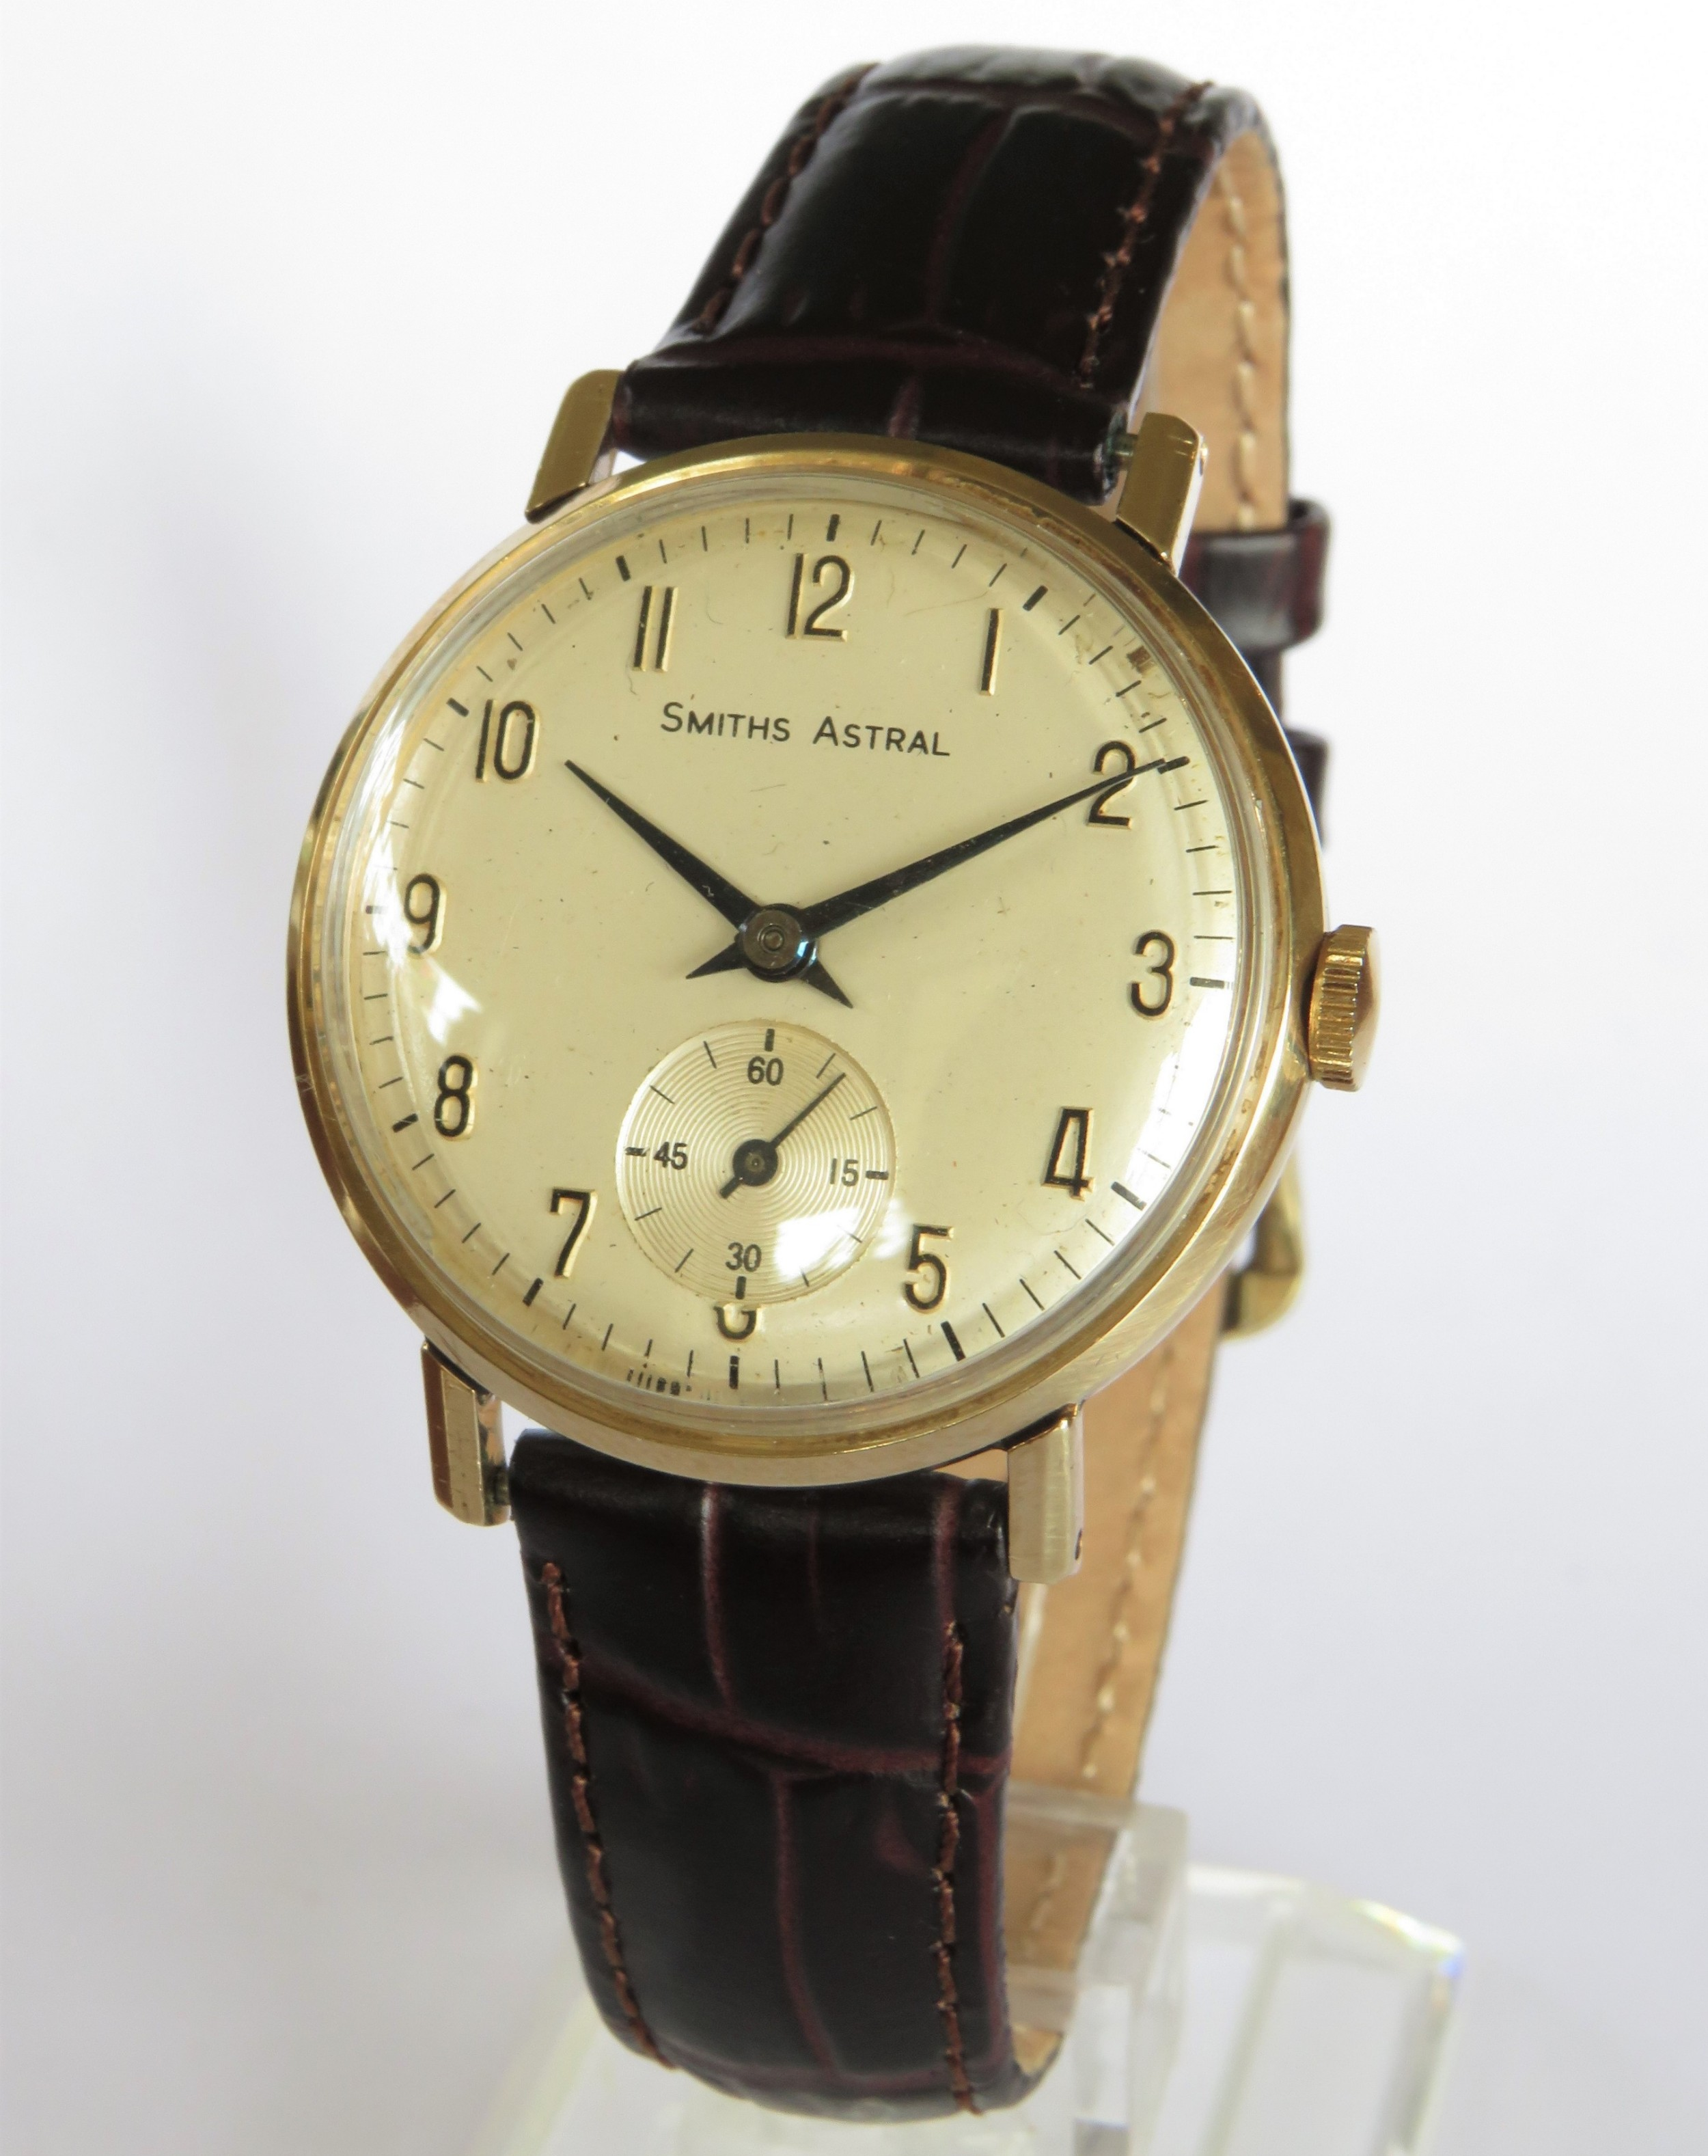 gents 1965 9ct gold smiths astral watch made in england